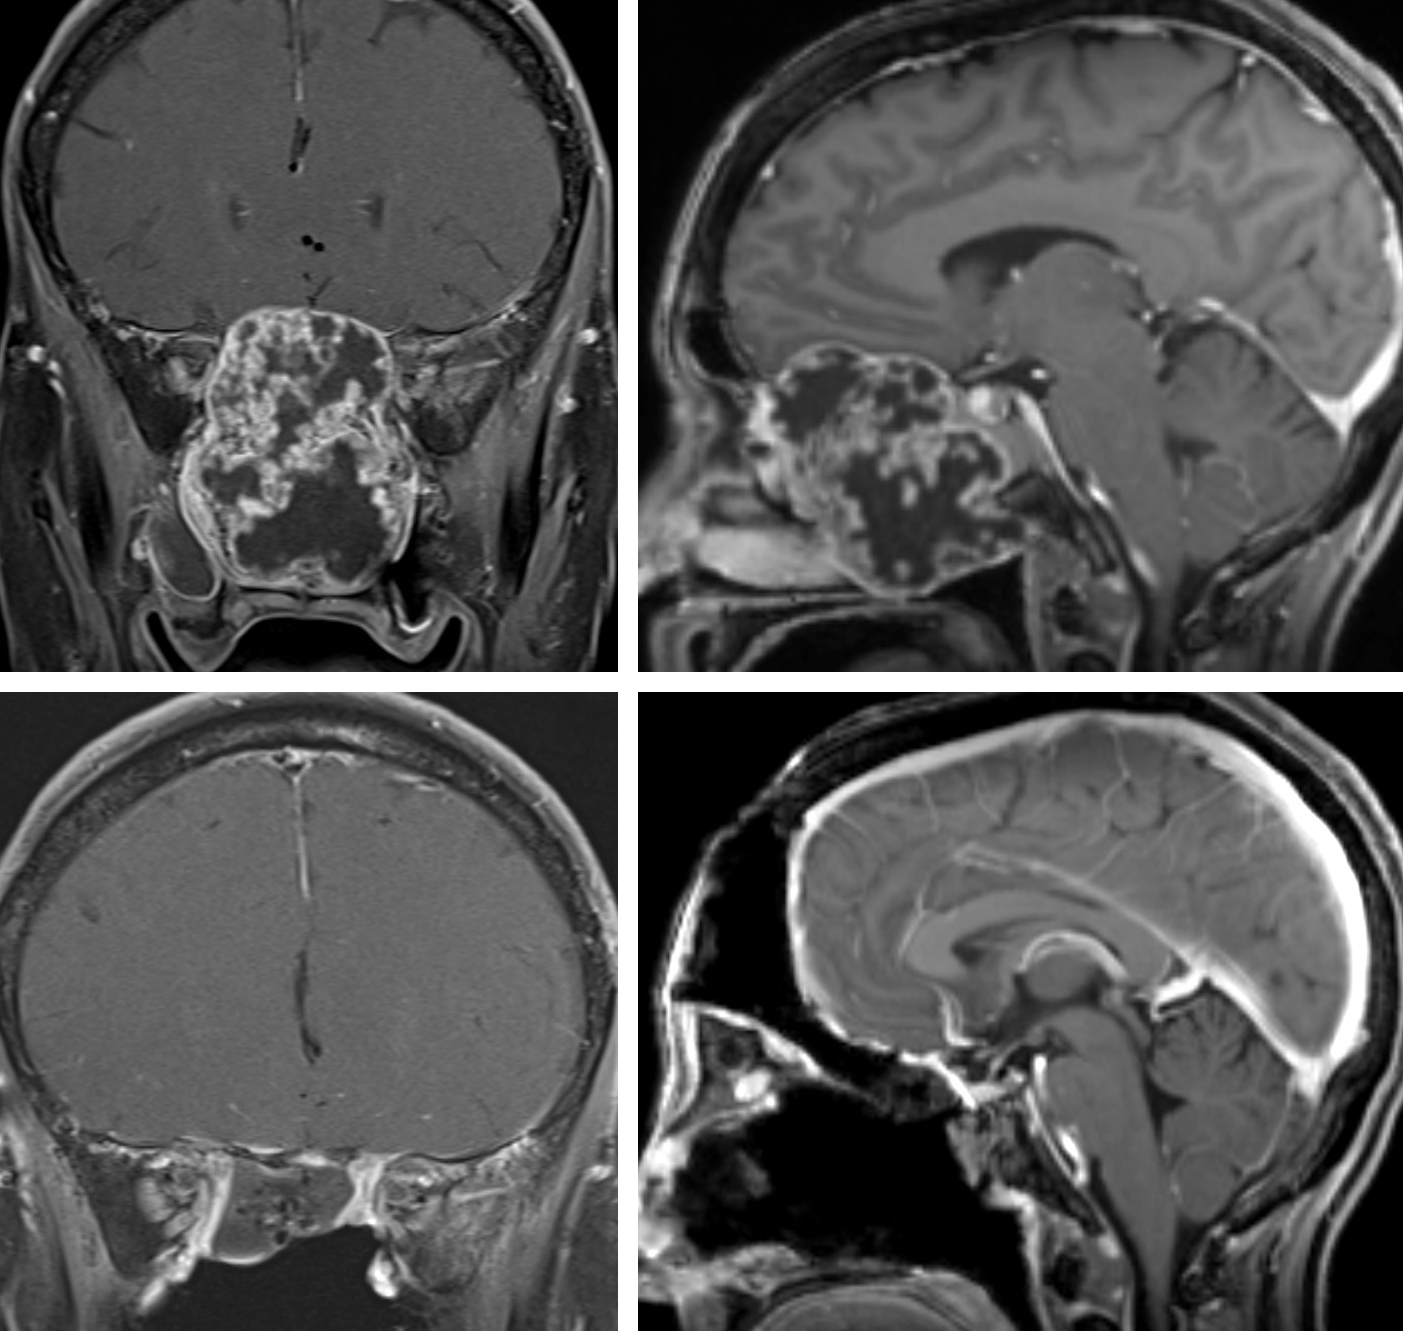 Figure 1: Anterior skull base chondrosarcoma with extensive invasion of the nasal cavities (upper images). This case illustrates appropriate indications for a bifrontal craniotomy. A transnasal approach was deemed inappropriate because the midline septal invasion of the tumor rendered the nasoseptal flap unavailable for skull base reconstruction. The bottom postoperative images demonstrate gross total resection of the mass.